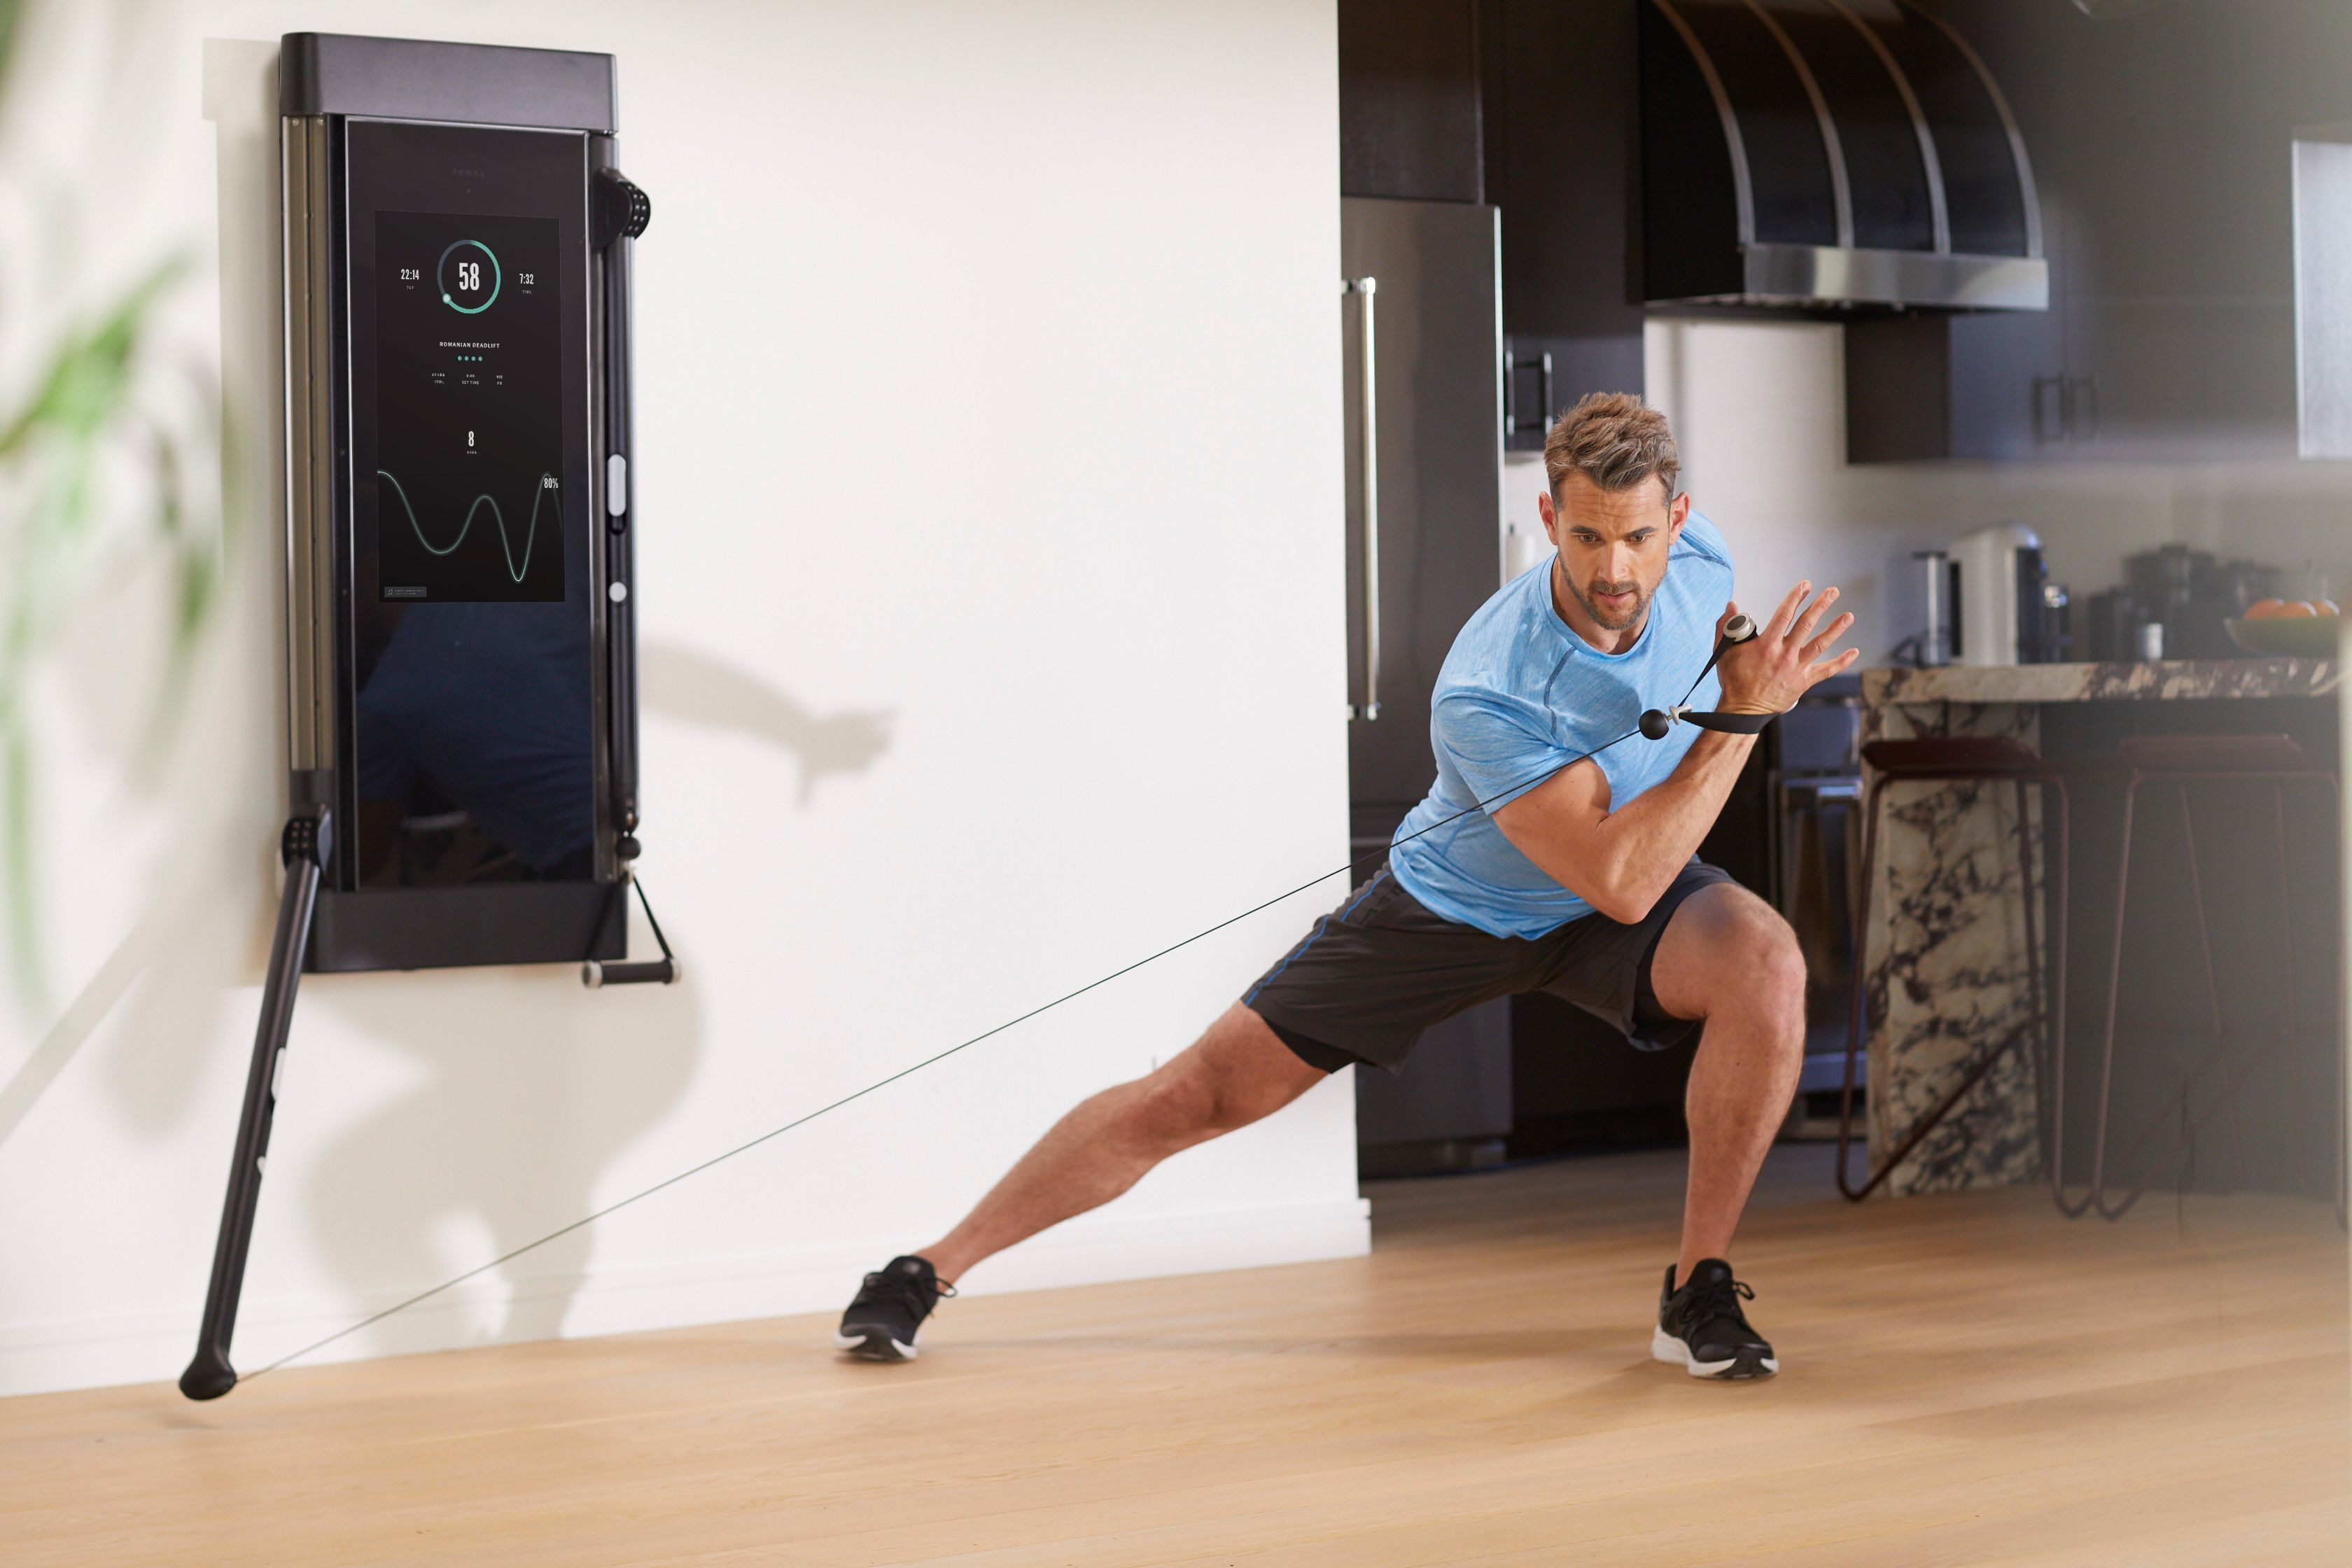 Get Ready for the Smartest Home Gym You've Ever Seen